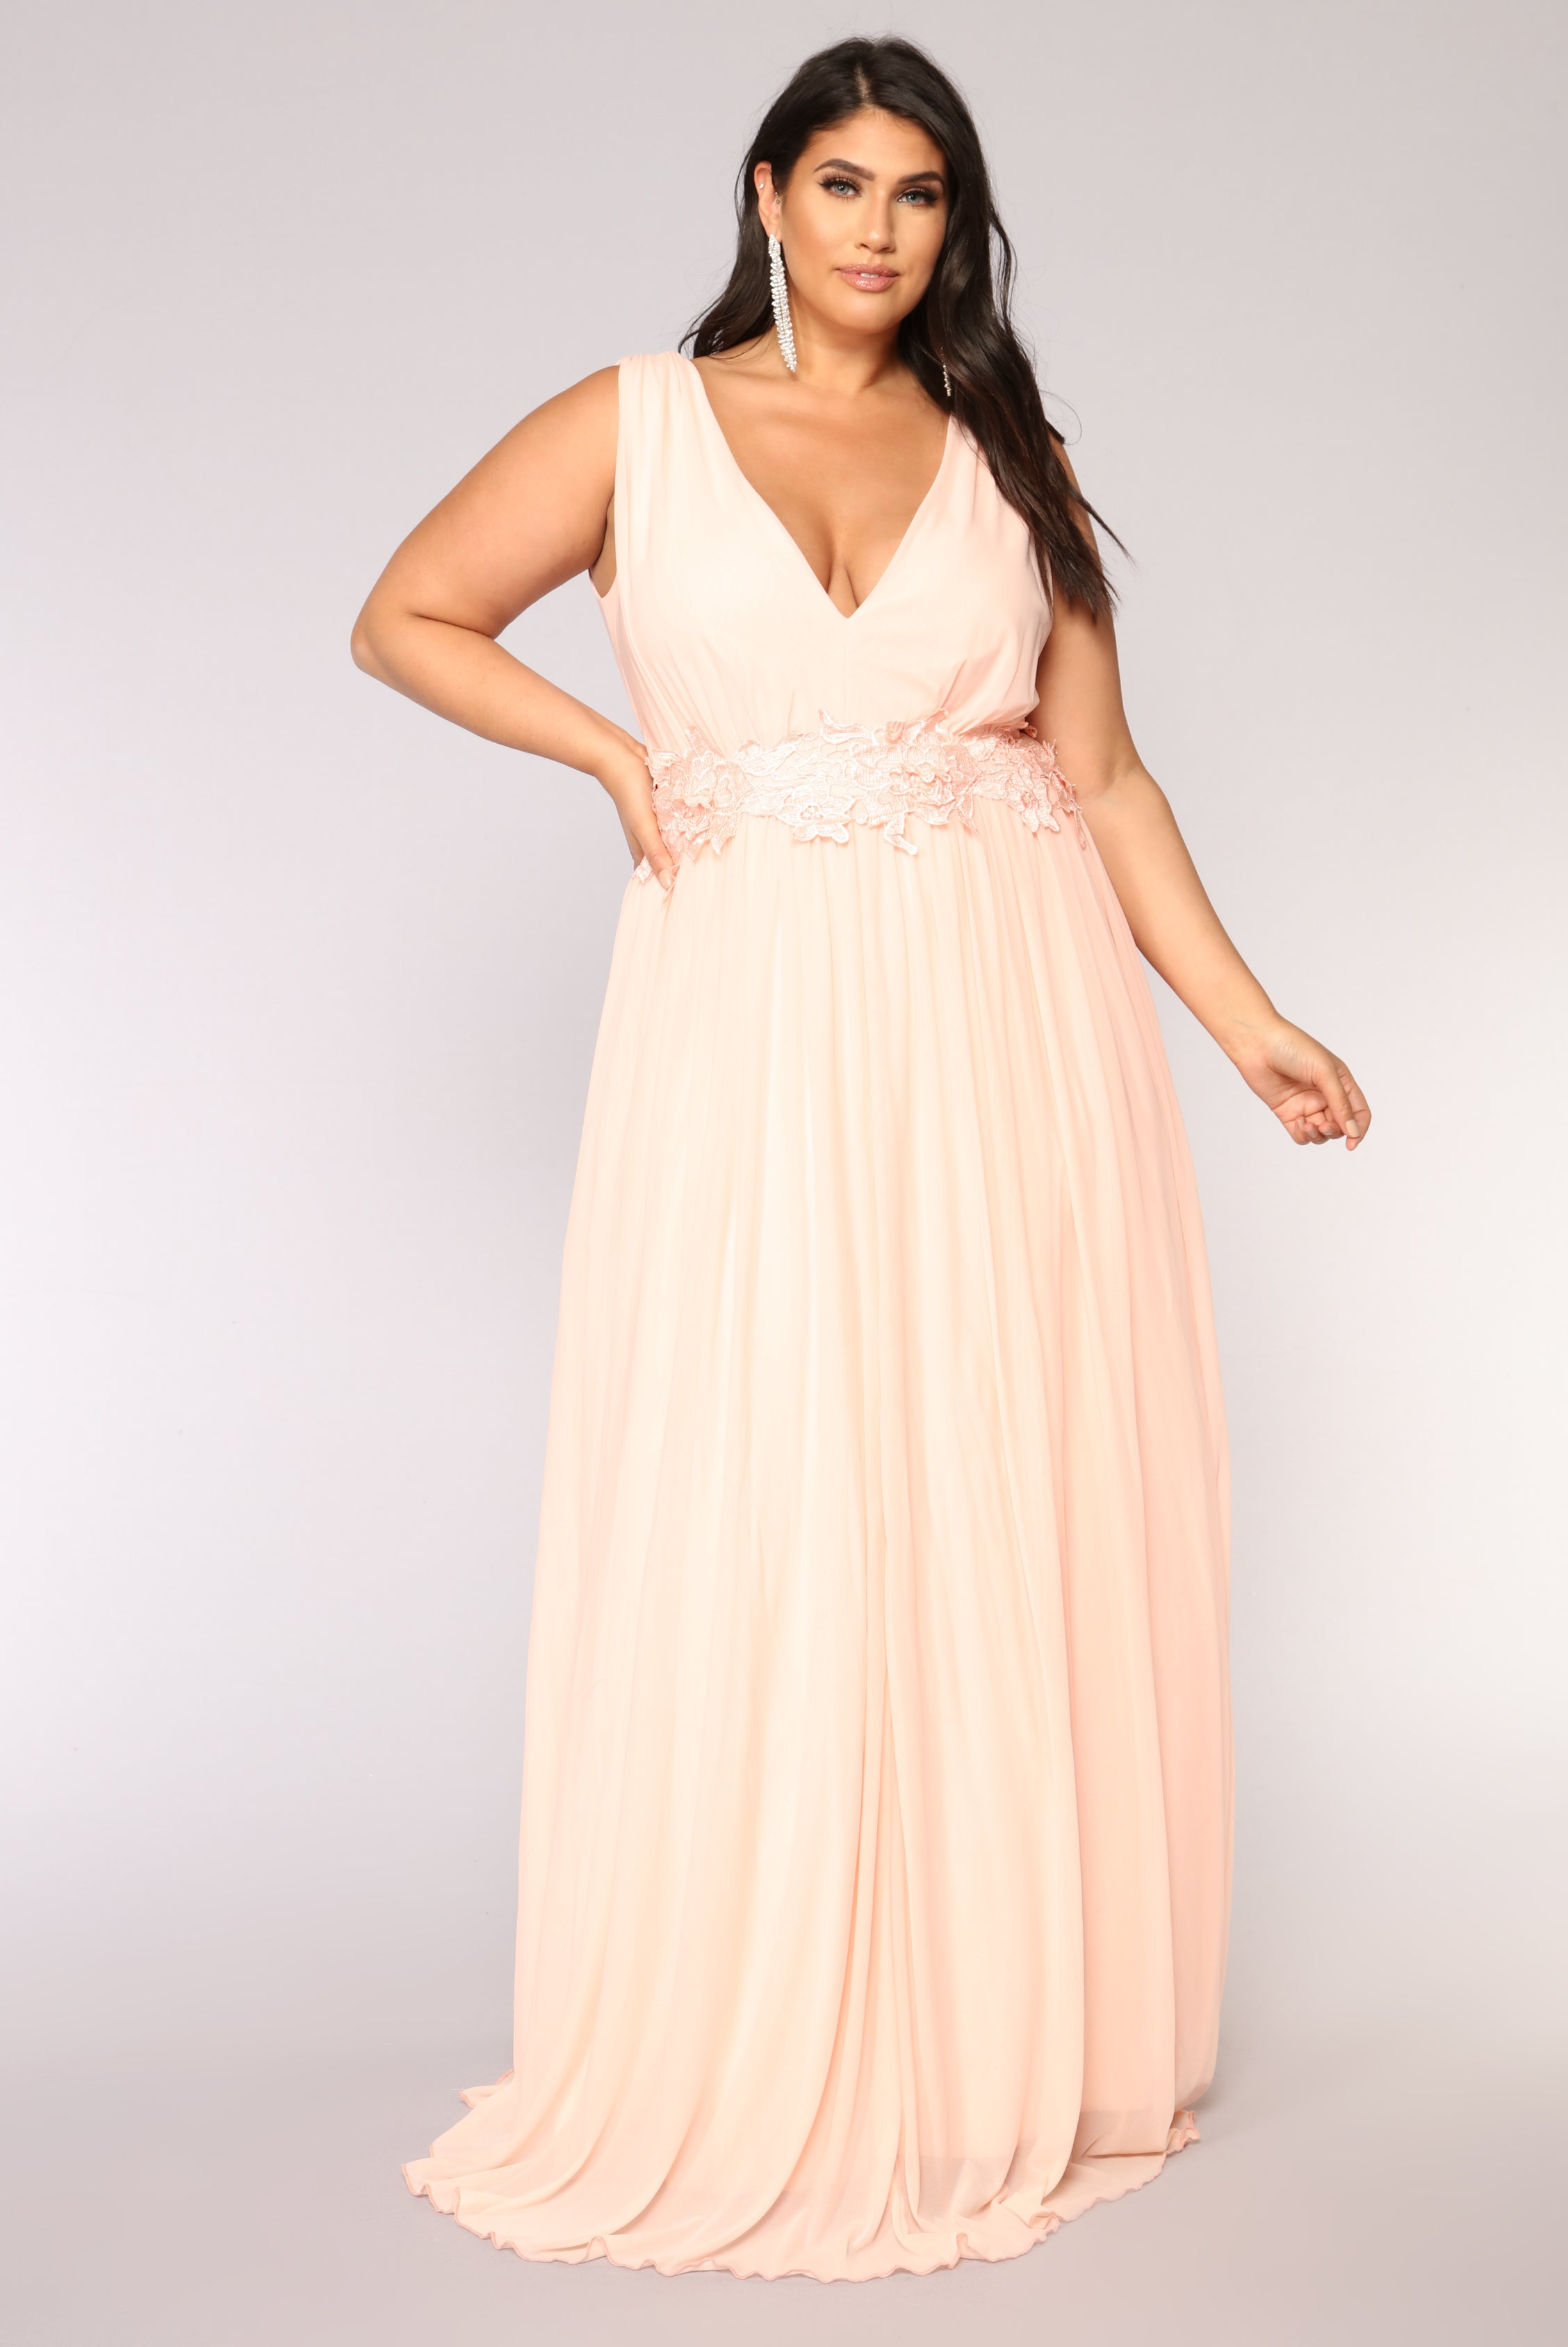 Maxi Dress Plus Size Canada - raveitsafe